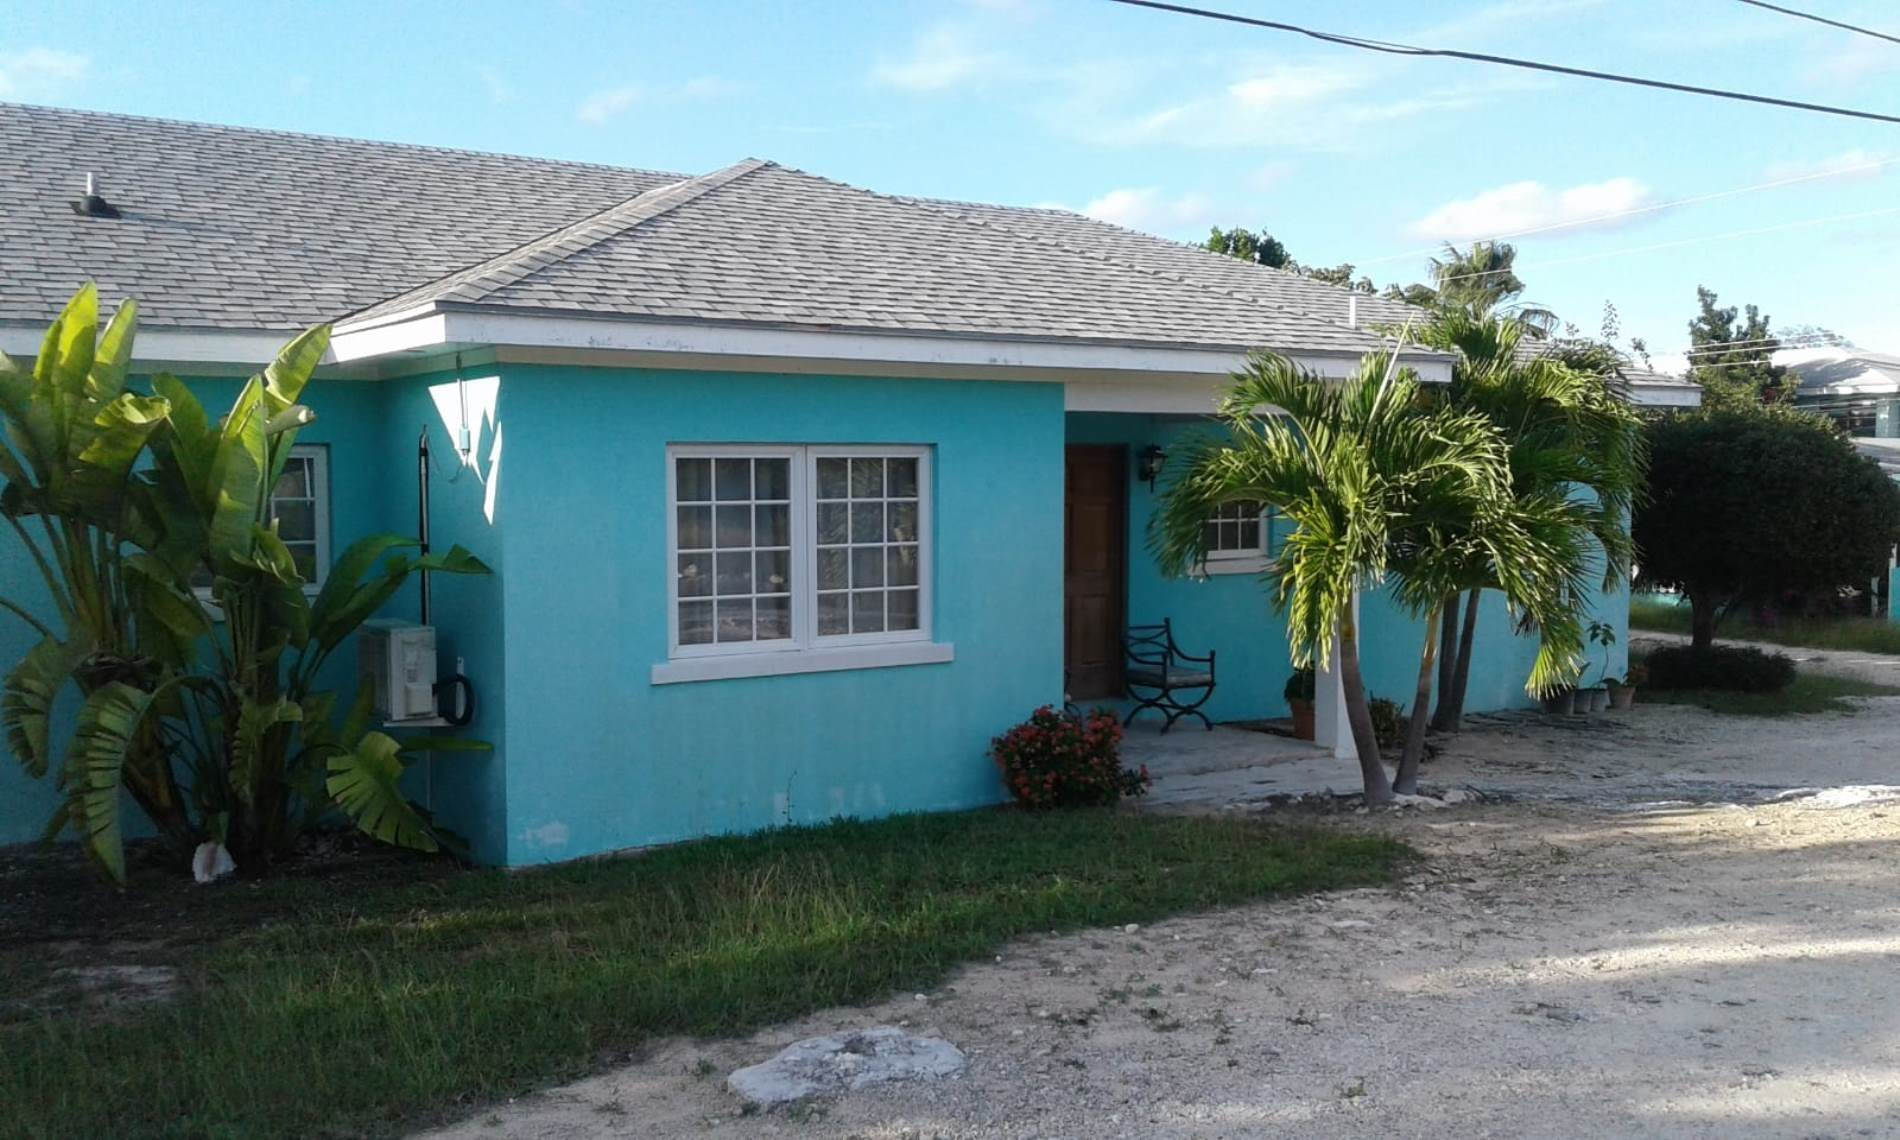 20. Single Family Homes for Sale at Unfinished House for Sale Near Jolly Hall Beach - MLS 35899 Bahama Sound, Exuma, Bahamas